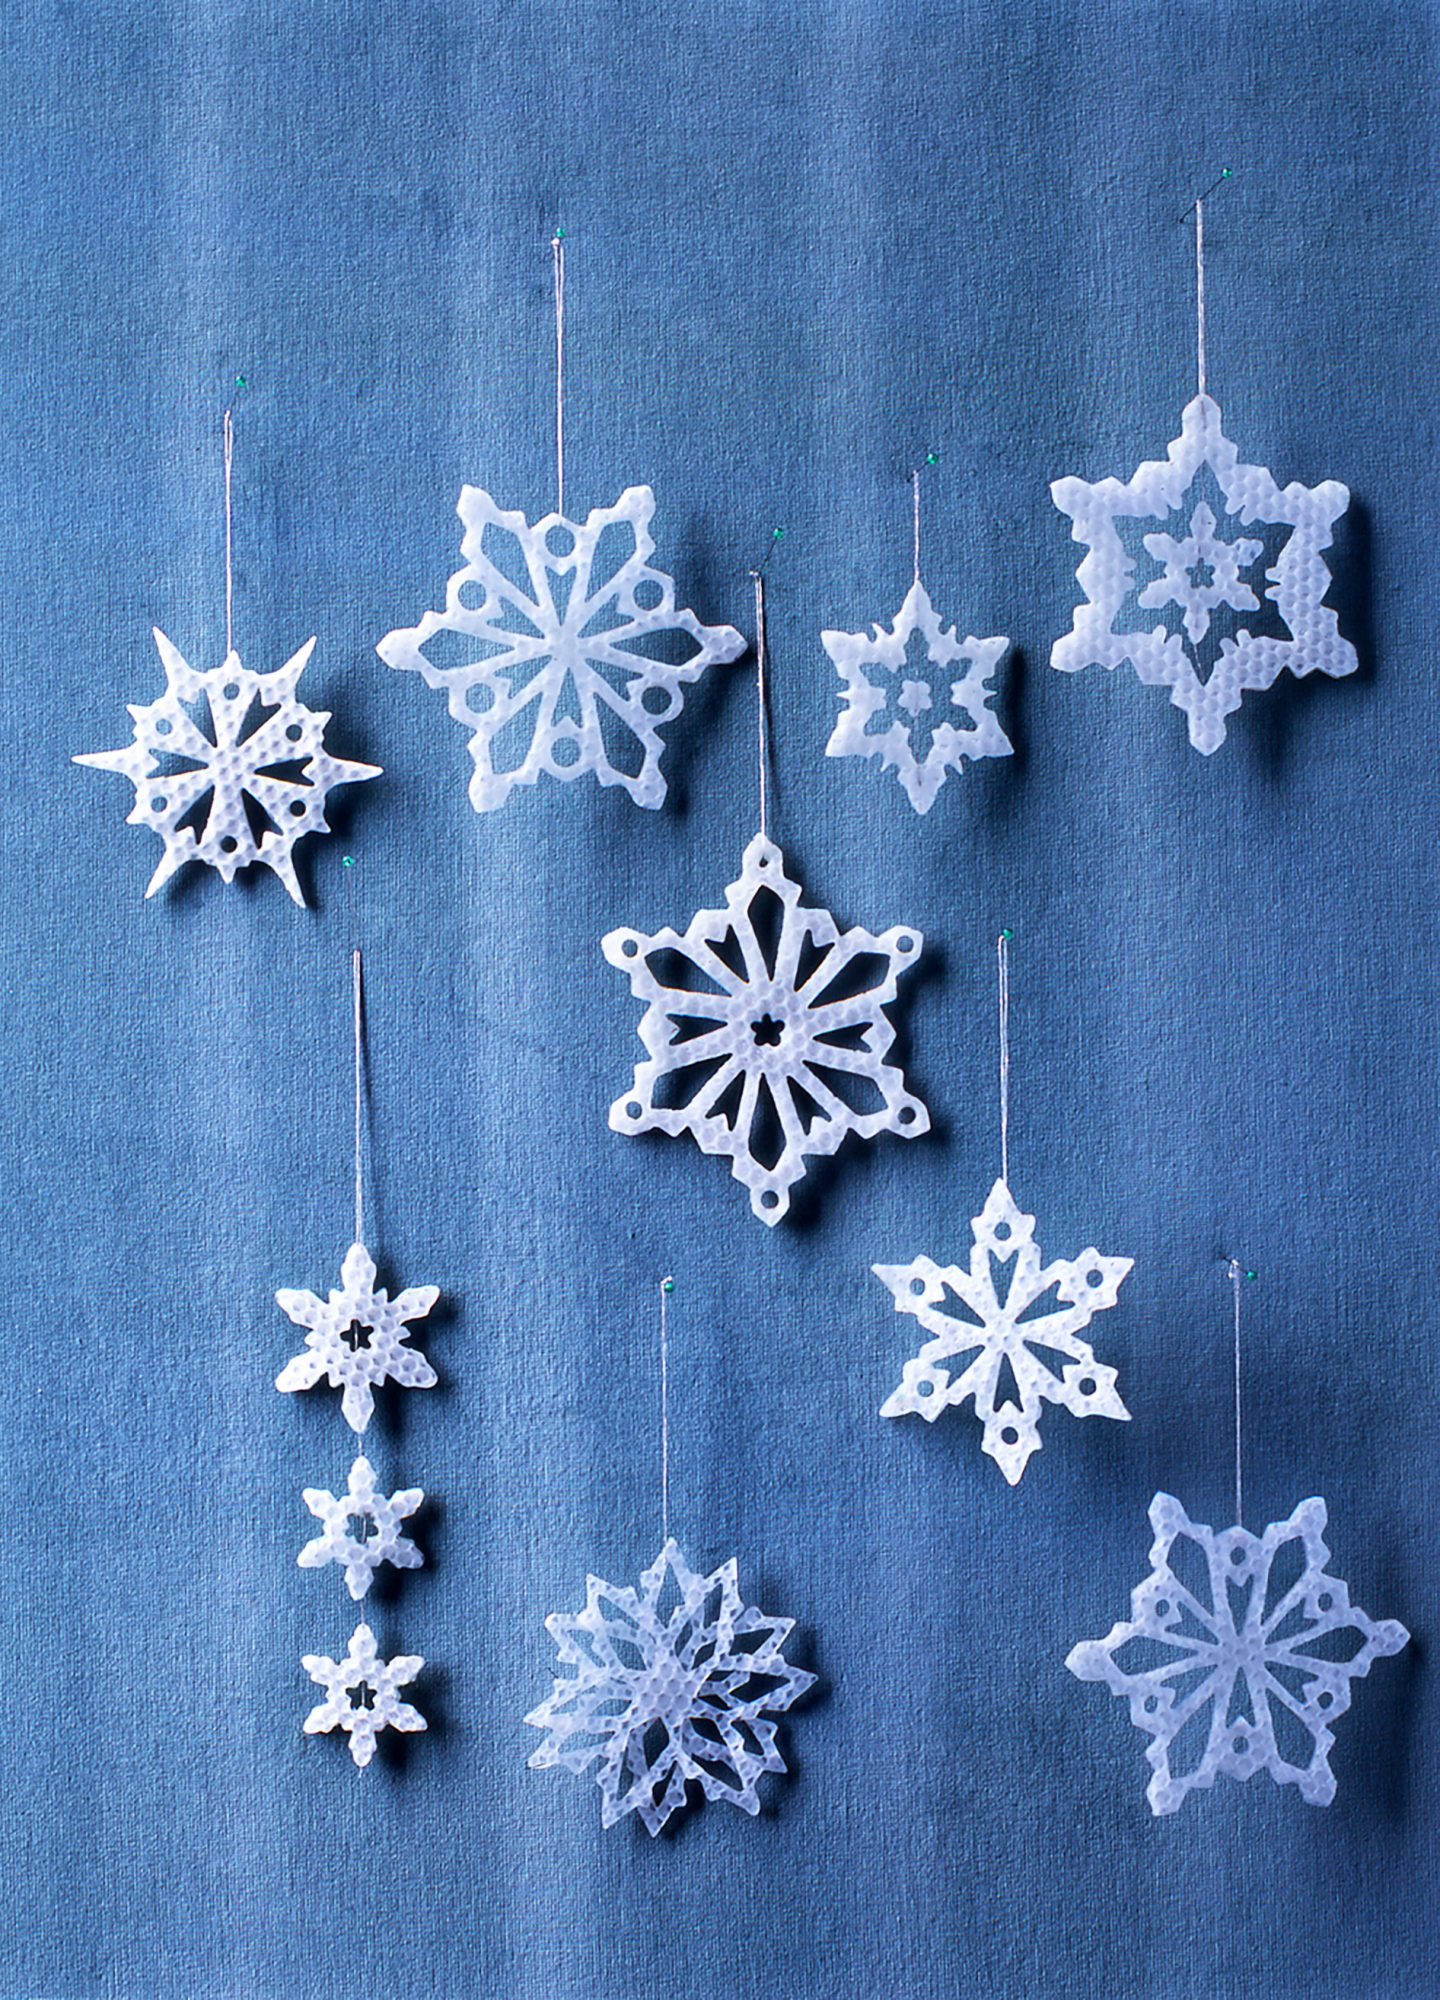 Wax Snowflake Ornament